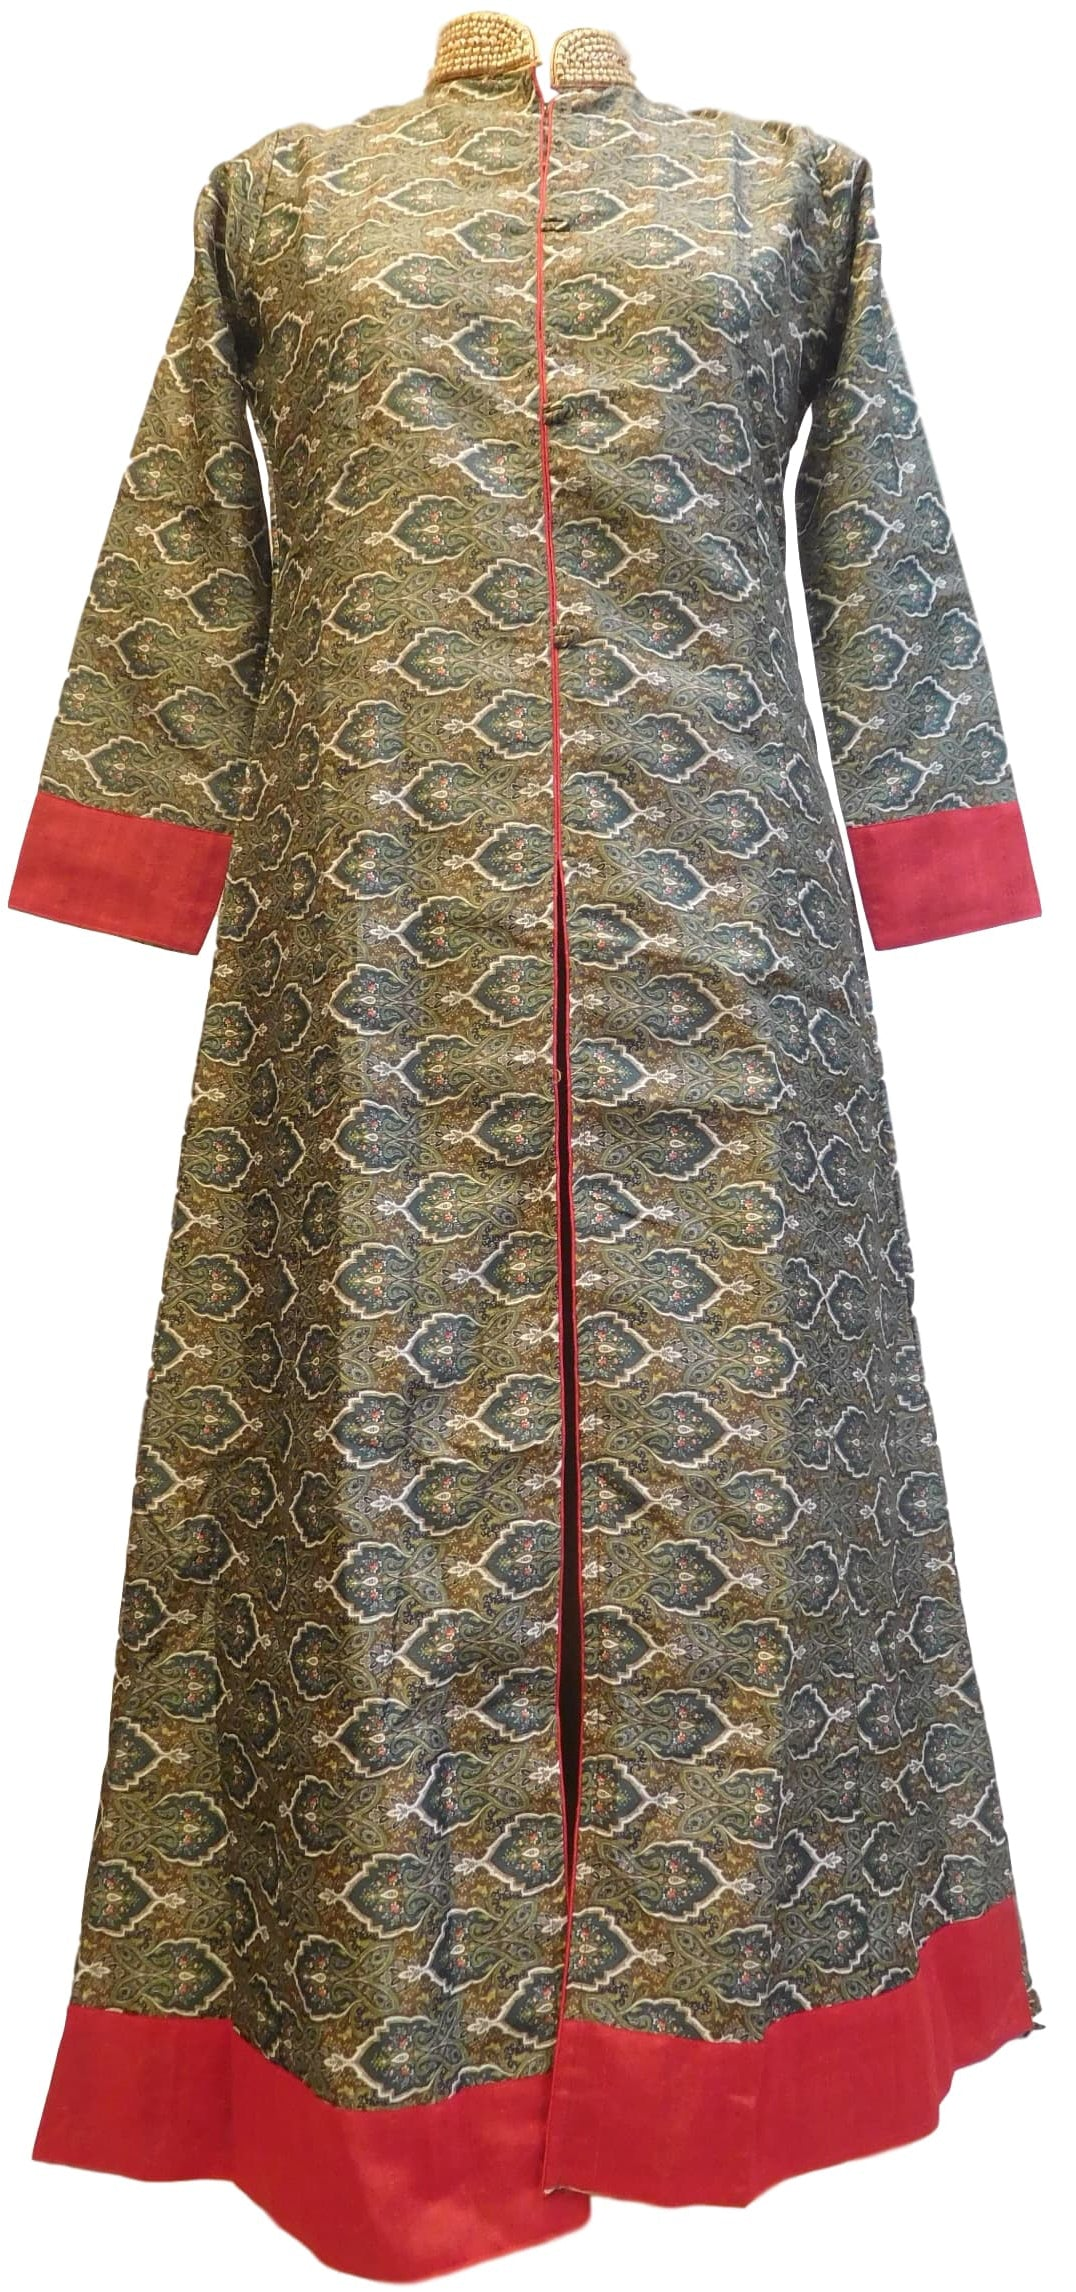 Brown Designer Cotton (Rayon) Printed Kurti Kurta